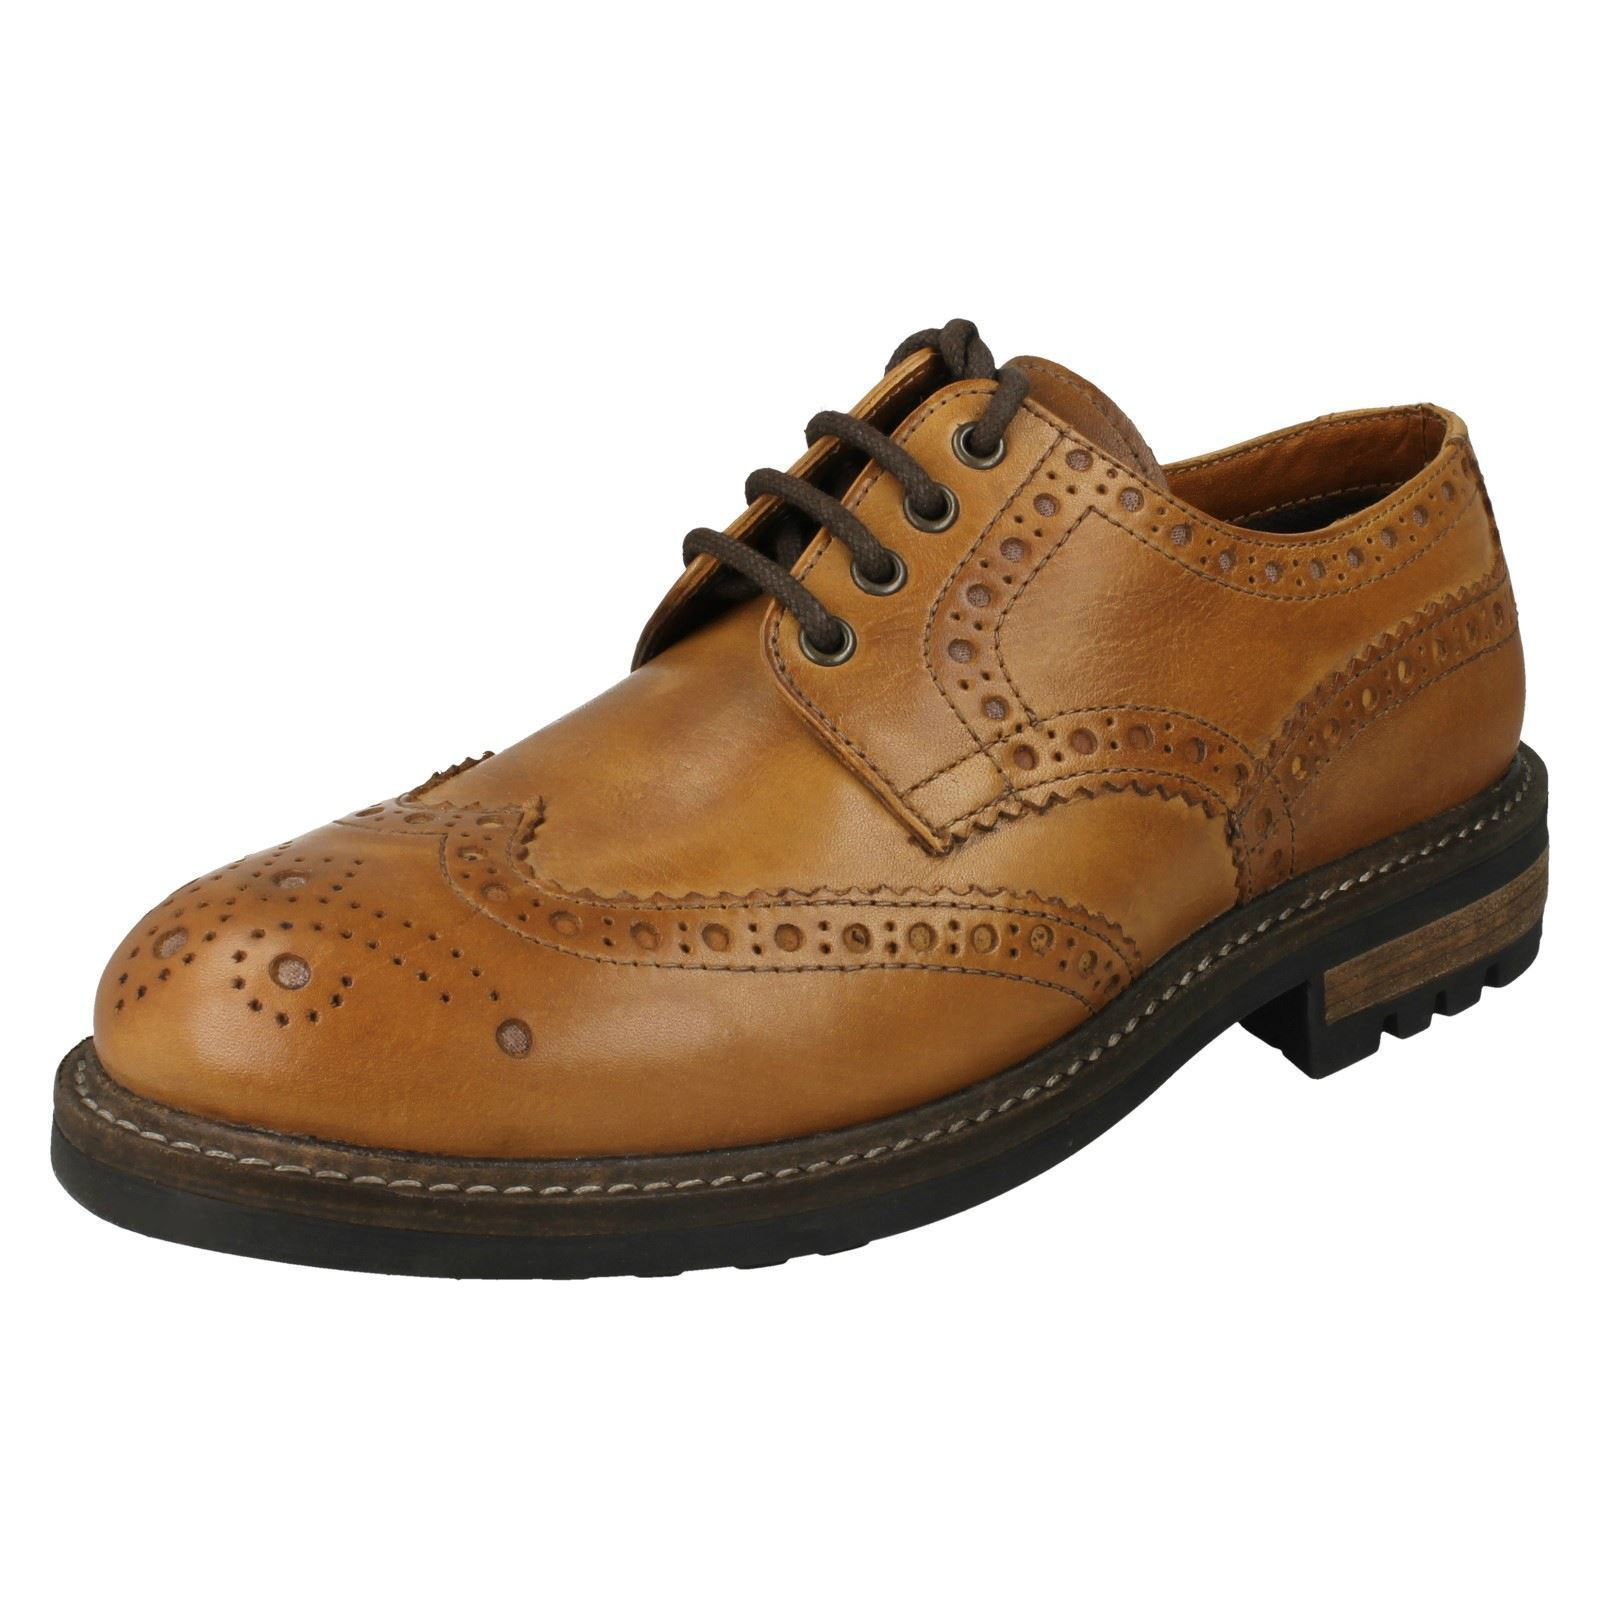 MENS RED TAPE BRACKEN CLASSIC LACE UP BROGUES SMART FORMAL TAN LEATHER SHOES